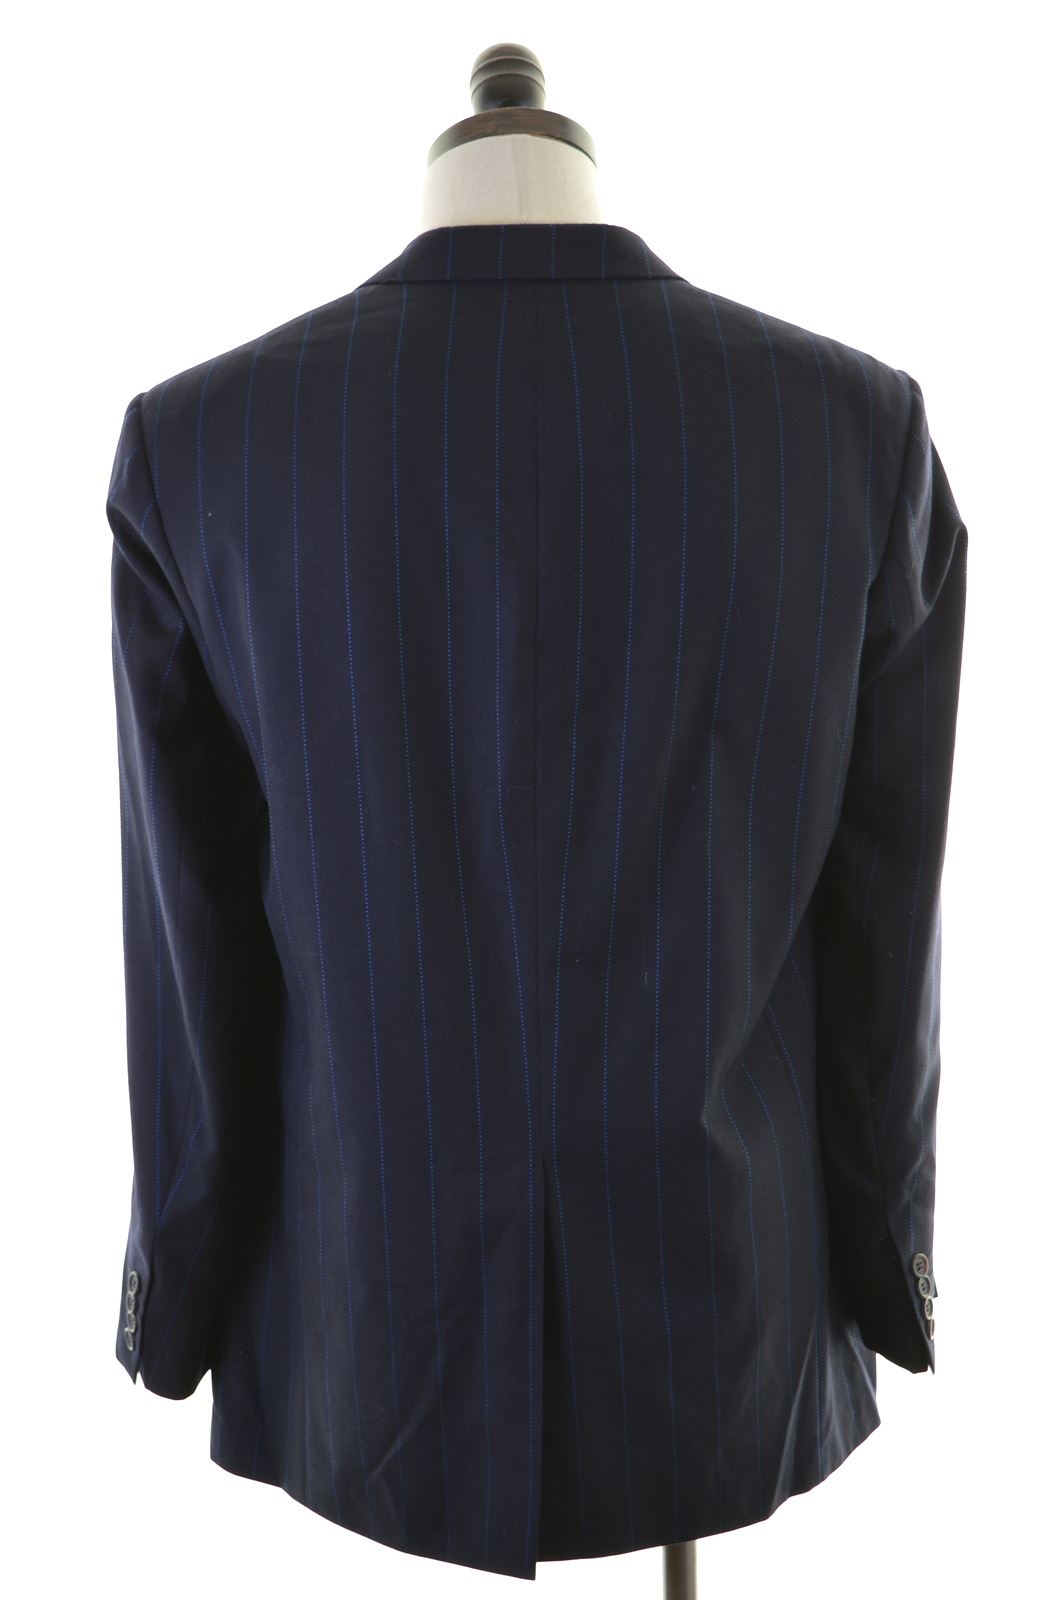 0cef0ab8dbe5d TED BAKER Mens 3 Button Blazer Jacket Size 42 XL Navy Blue Wool AQ02 ...